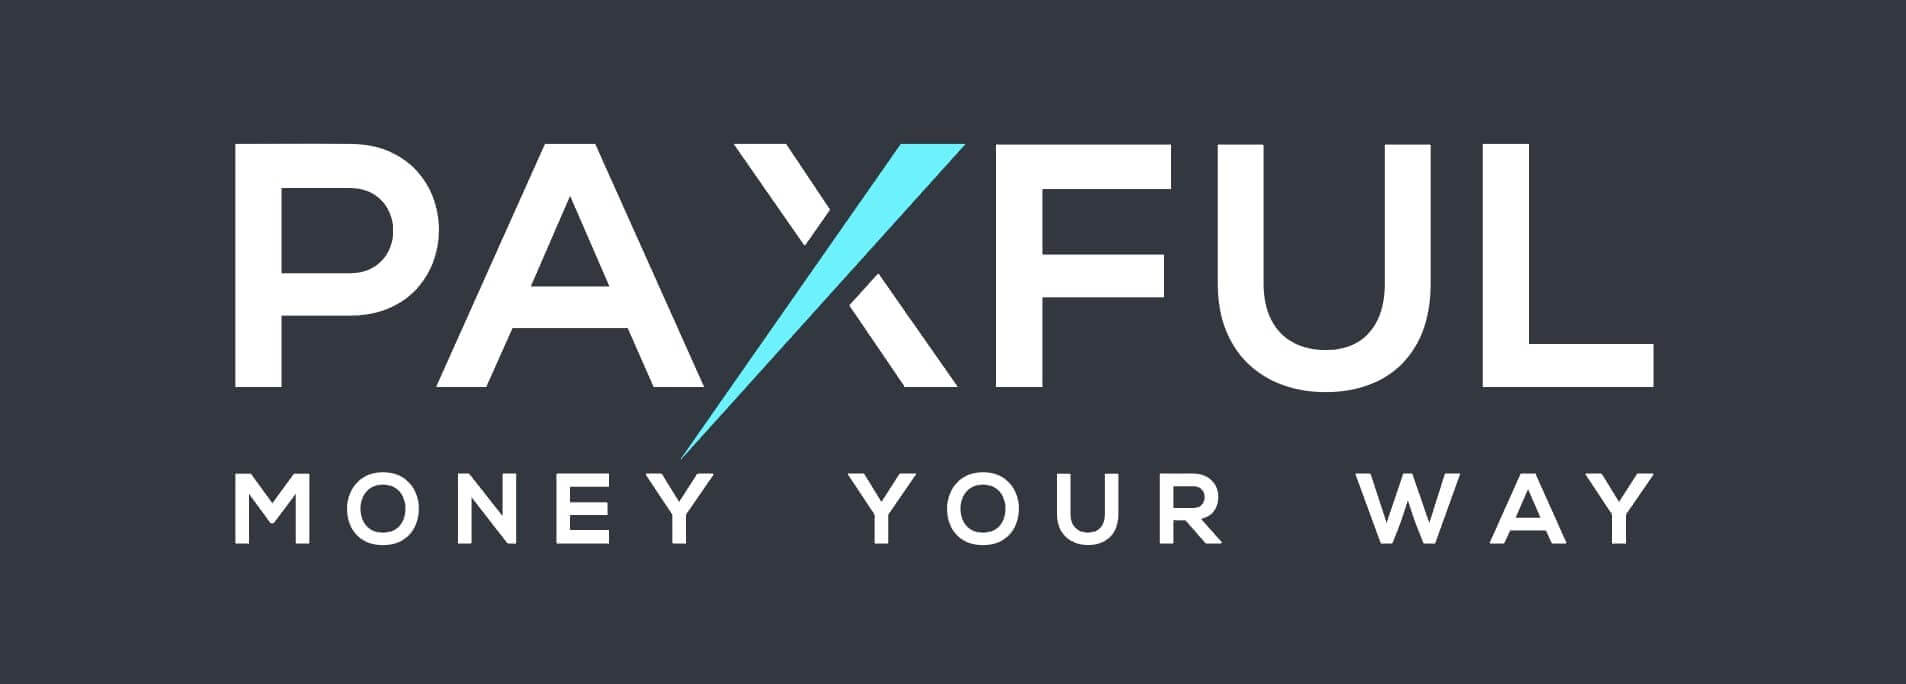 Paxful Customer Service Phone Number   Paxful Live chat